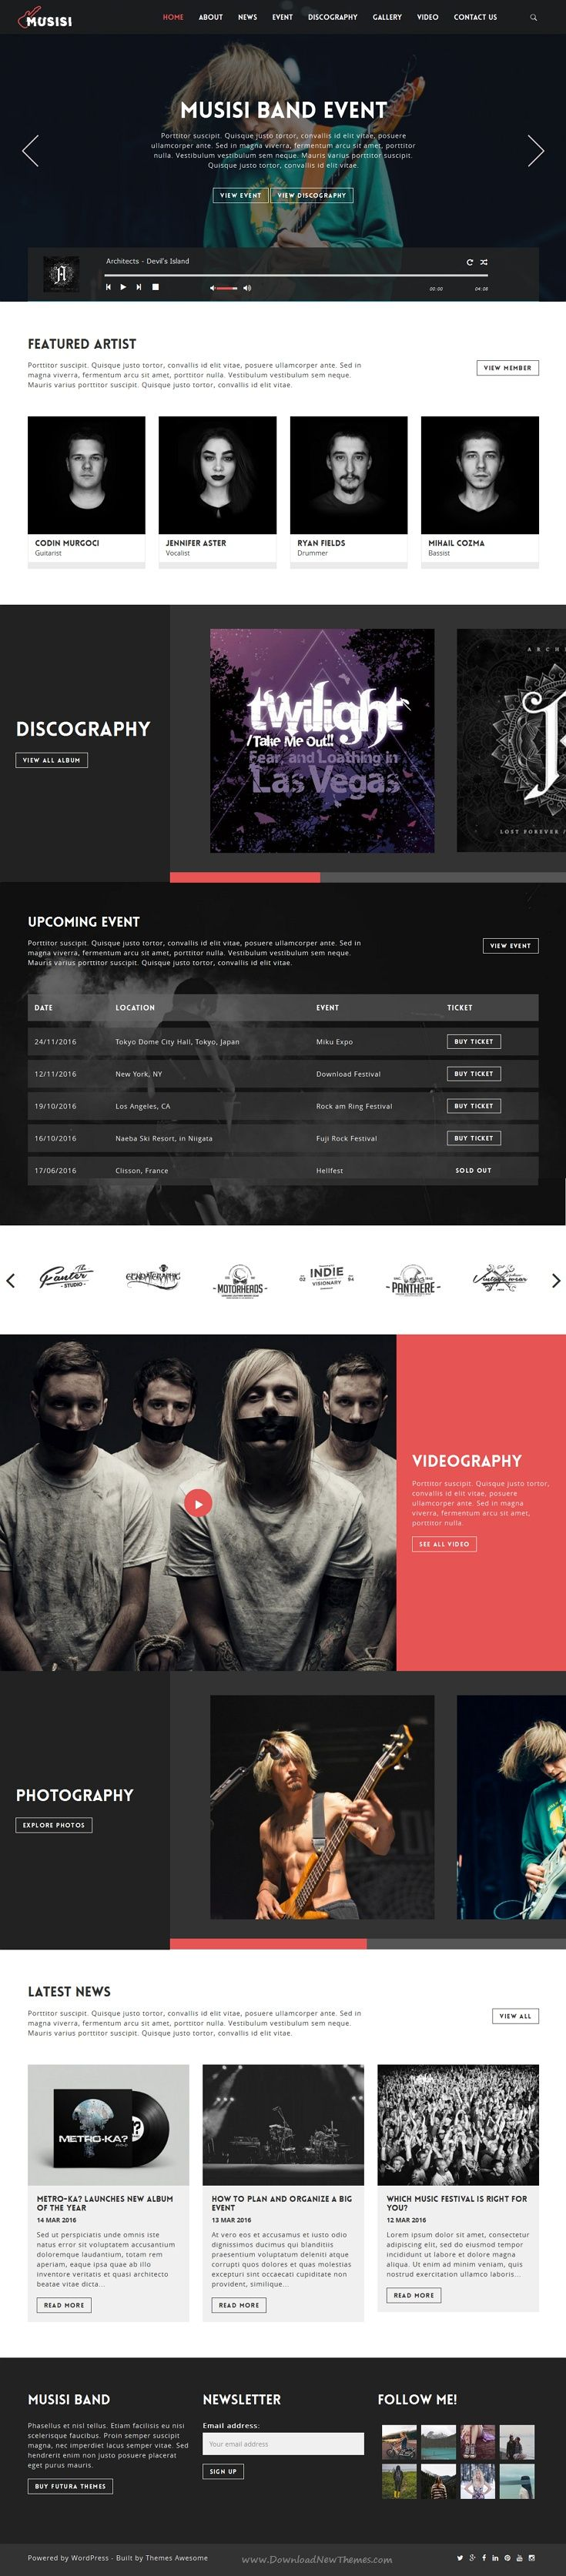 Musisi wonderful responsive WordPress Theme is Suitable for #music bands, dj's, singers, #artists, radio, events and entertainment #websites.